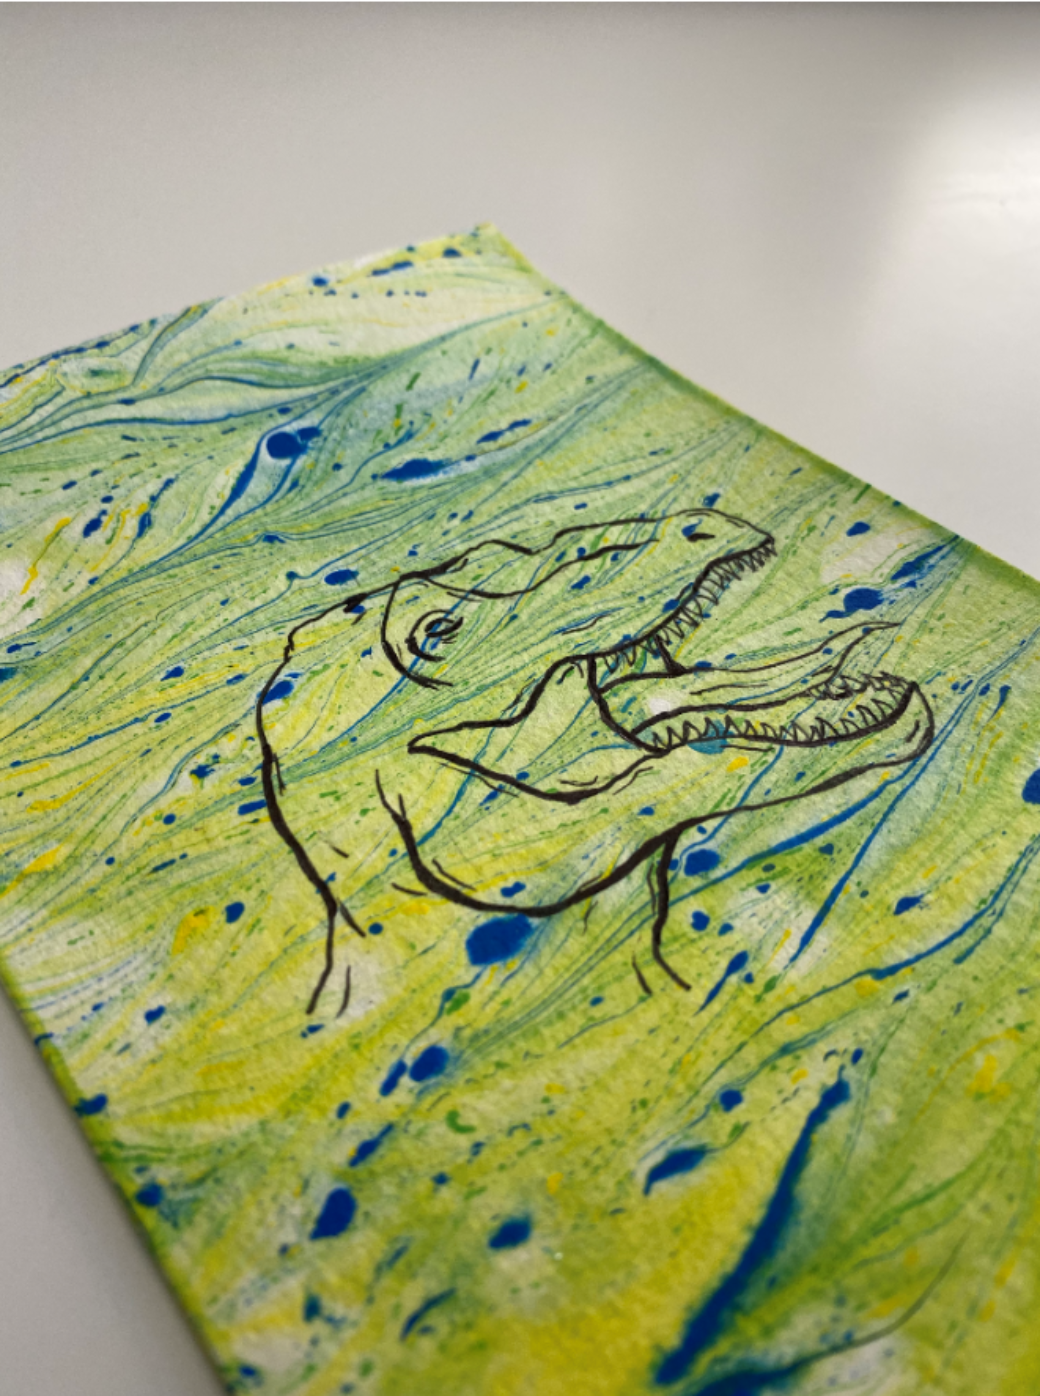 A colorful homemade work of art depicts a tyrannosaurus rex with its tongue sticking out